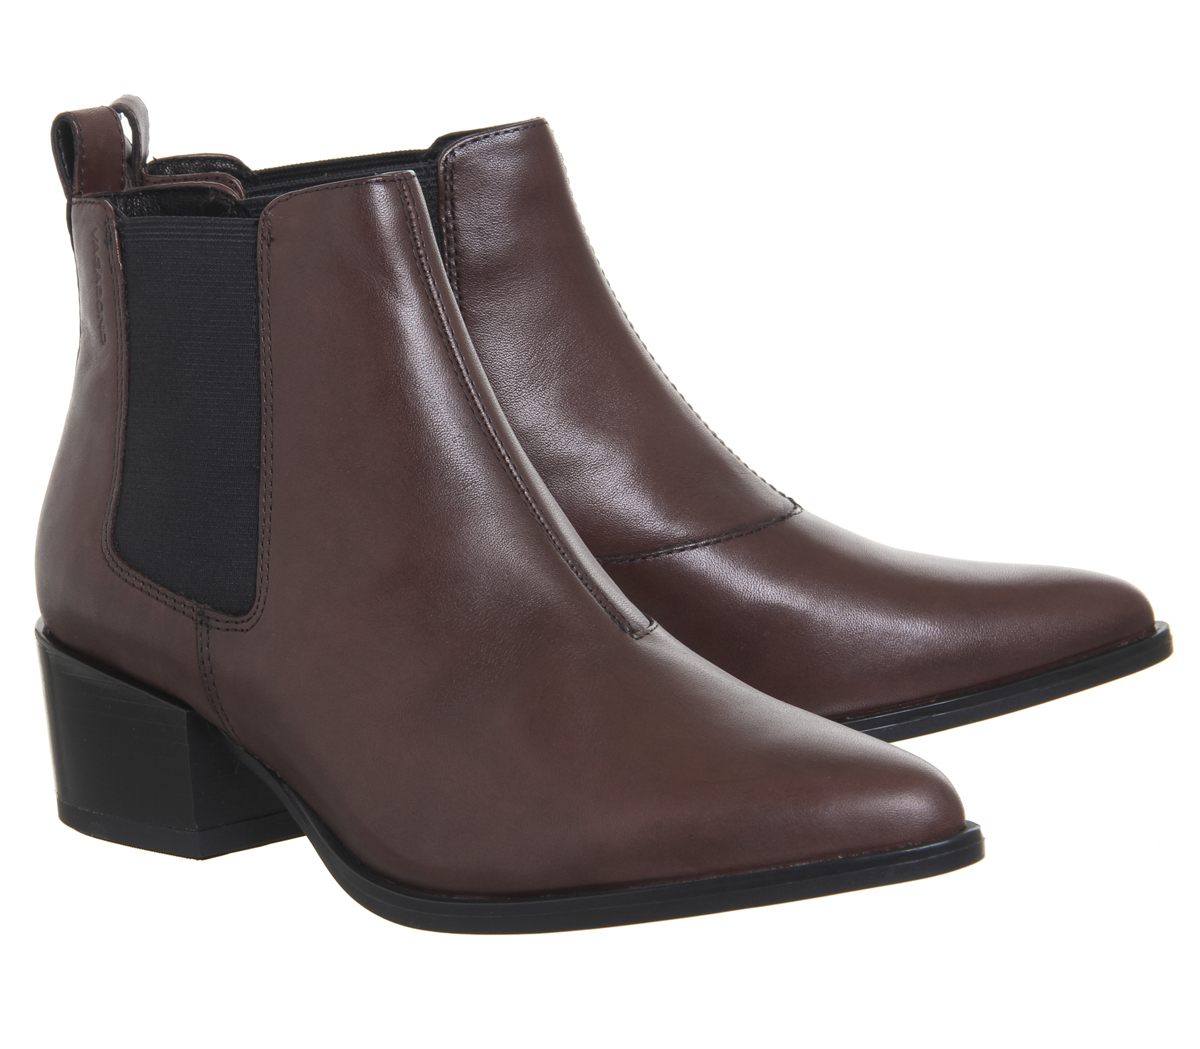 764f129c05bf Womens-Vagabond-Marja-Ankle-Boots-BORDO-LEATHER-Boots thumbnail